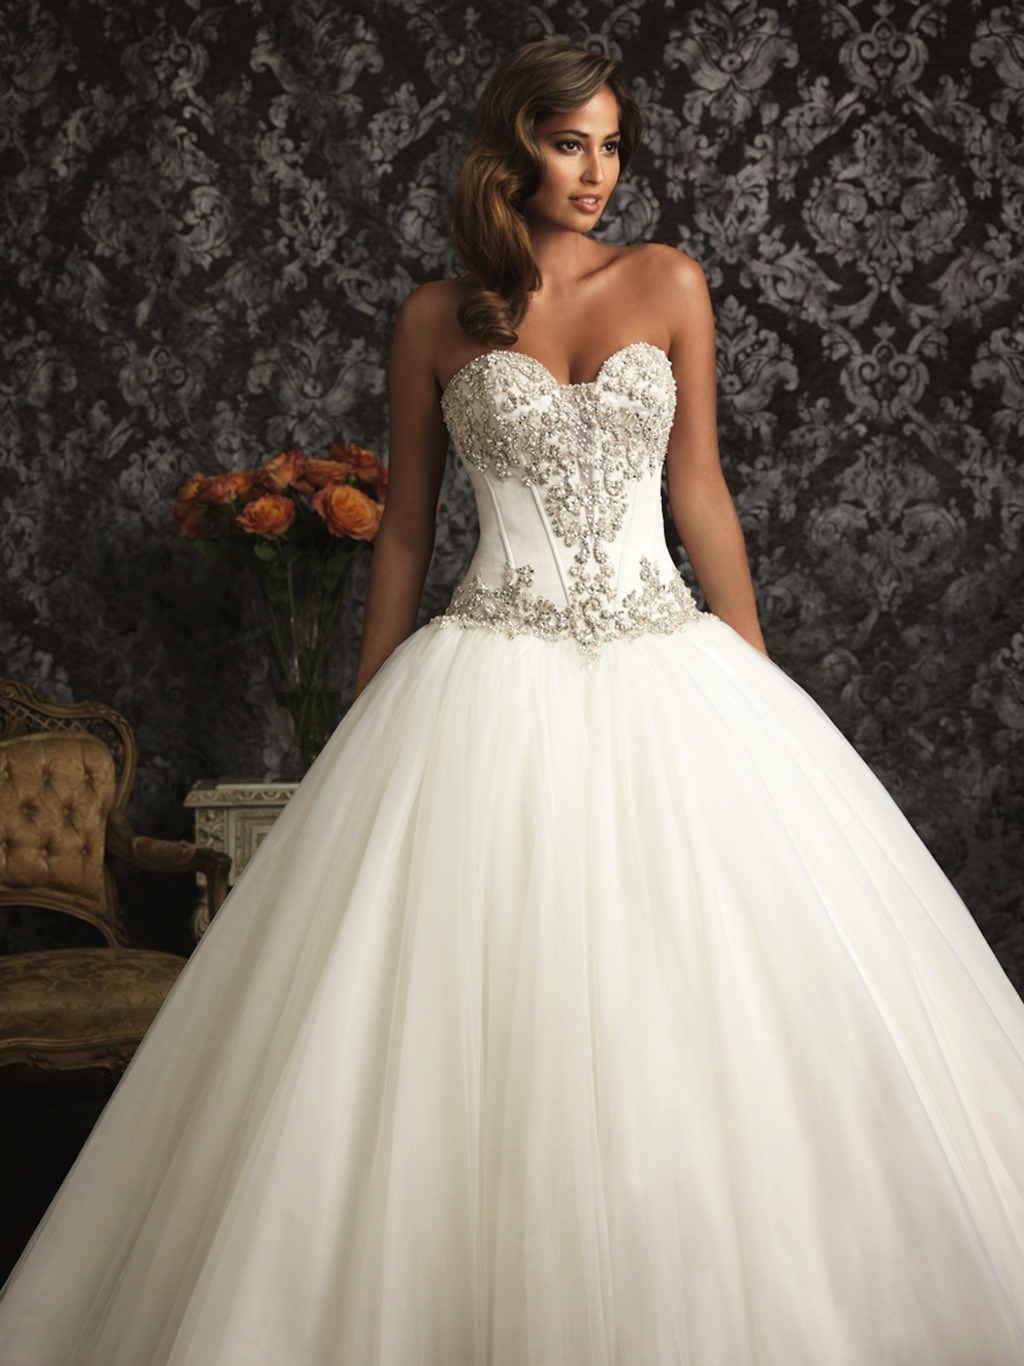 Allure-bridals-wedding-dress-bridal-gown-allure-collection-2013-9017f2.full